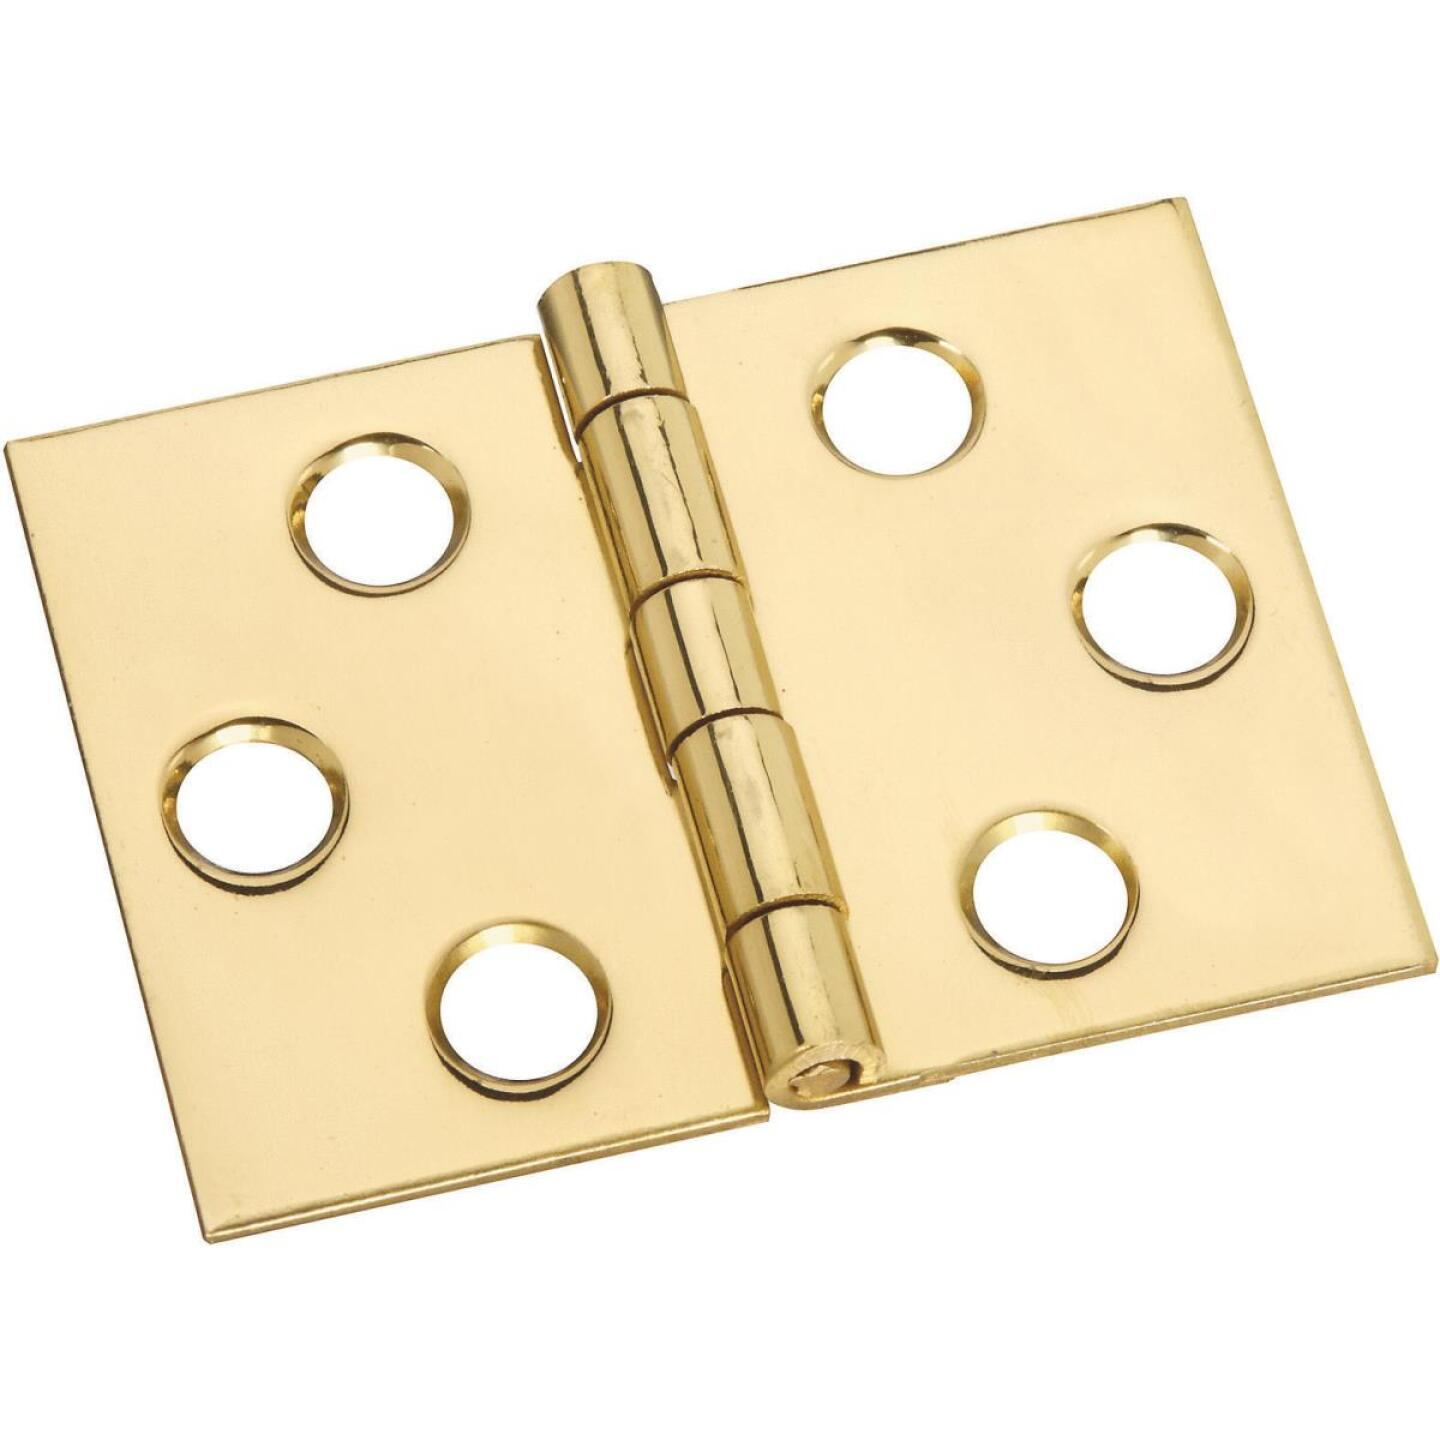 National 1-1/2 In. x 2 In. Brass Desk Hinge (2-Pack) Image 1